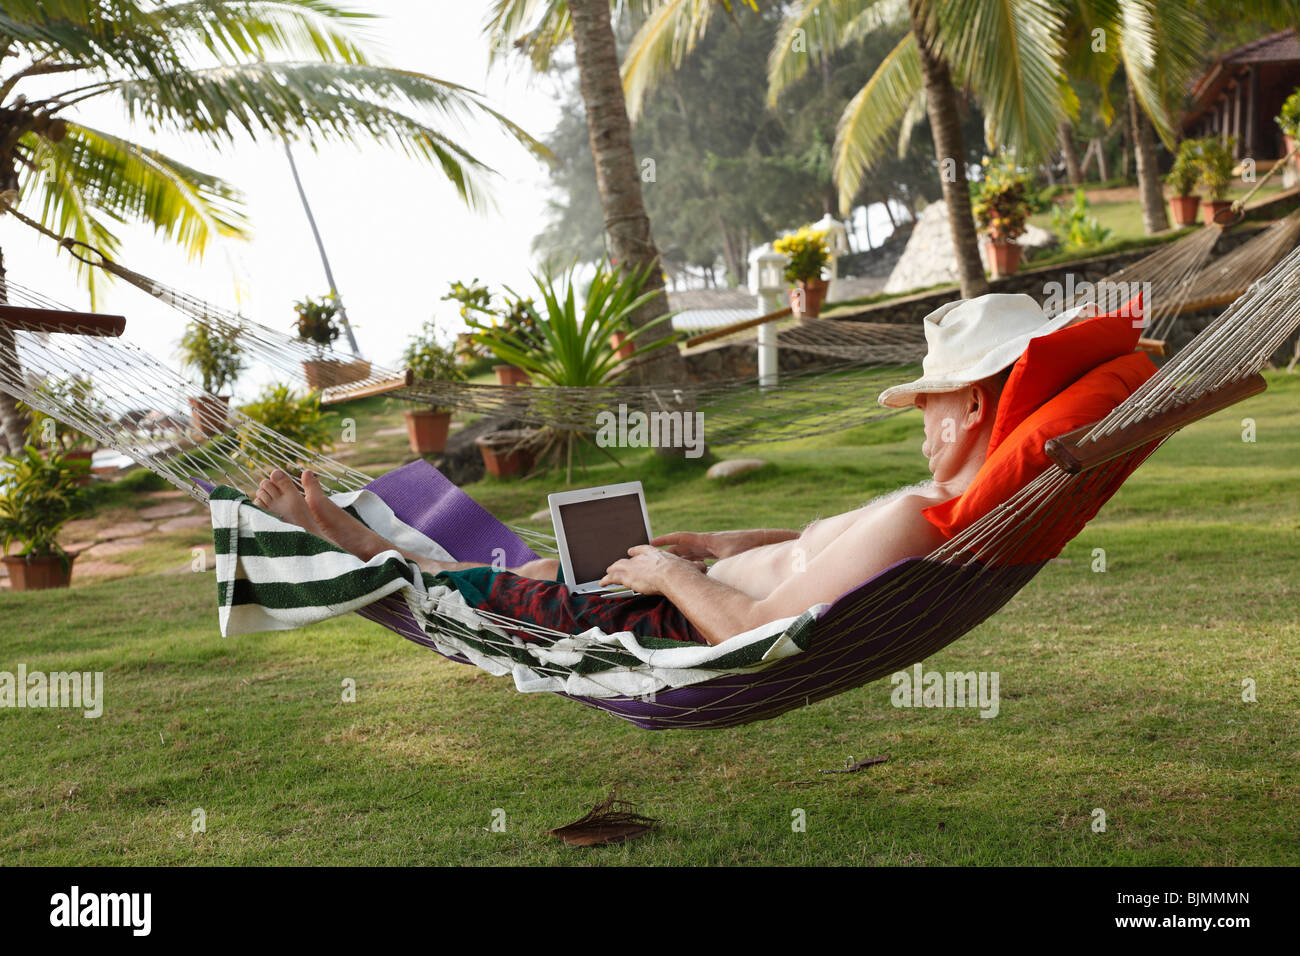 Man wearing a hat, lying in a hammock under palm trees and relaxing while working with a netbook, Bethsaida Hermitage - Stock Image